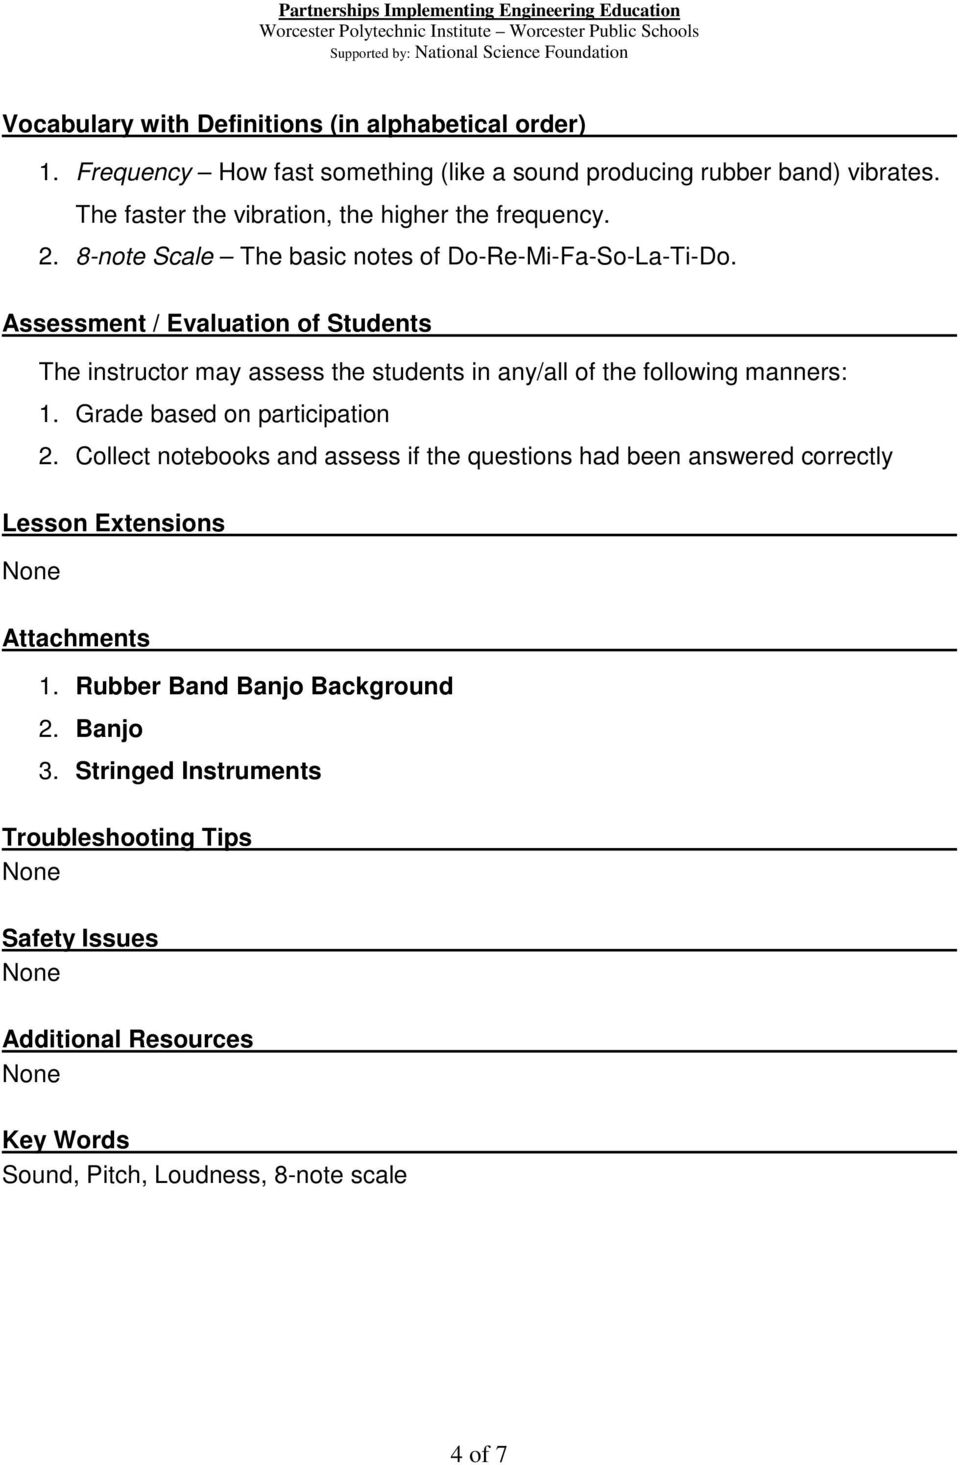 Assessment / Evaluation of Students The instructor may assess the students in any/all of the following manners: 1. Grade based on participation 2.